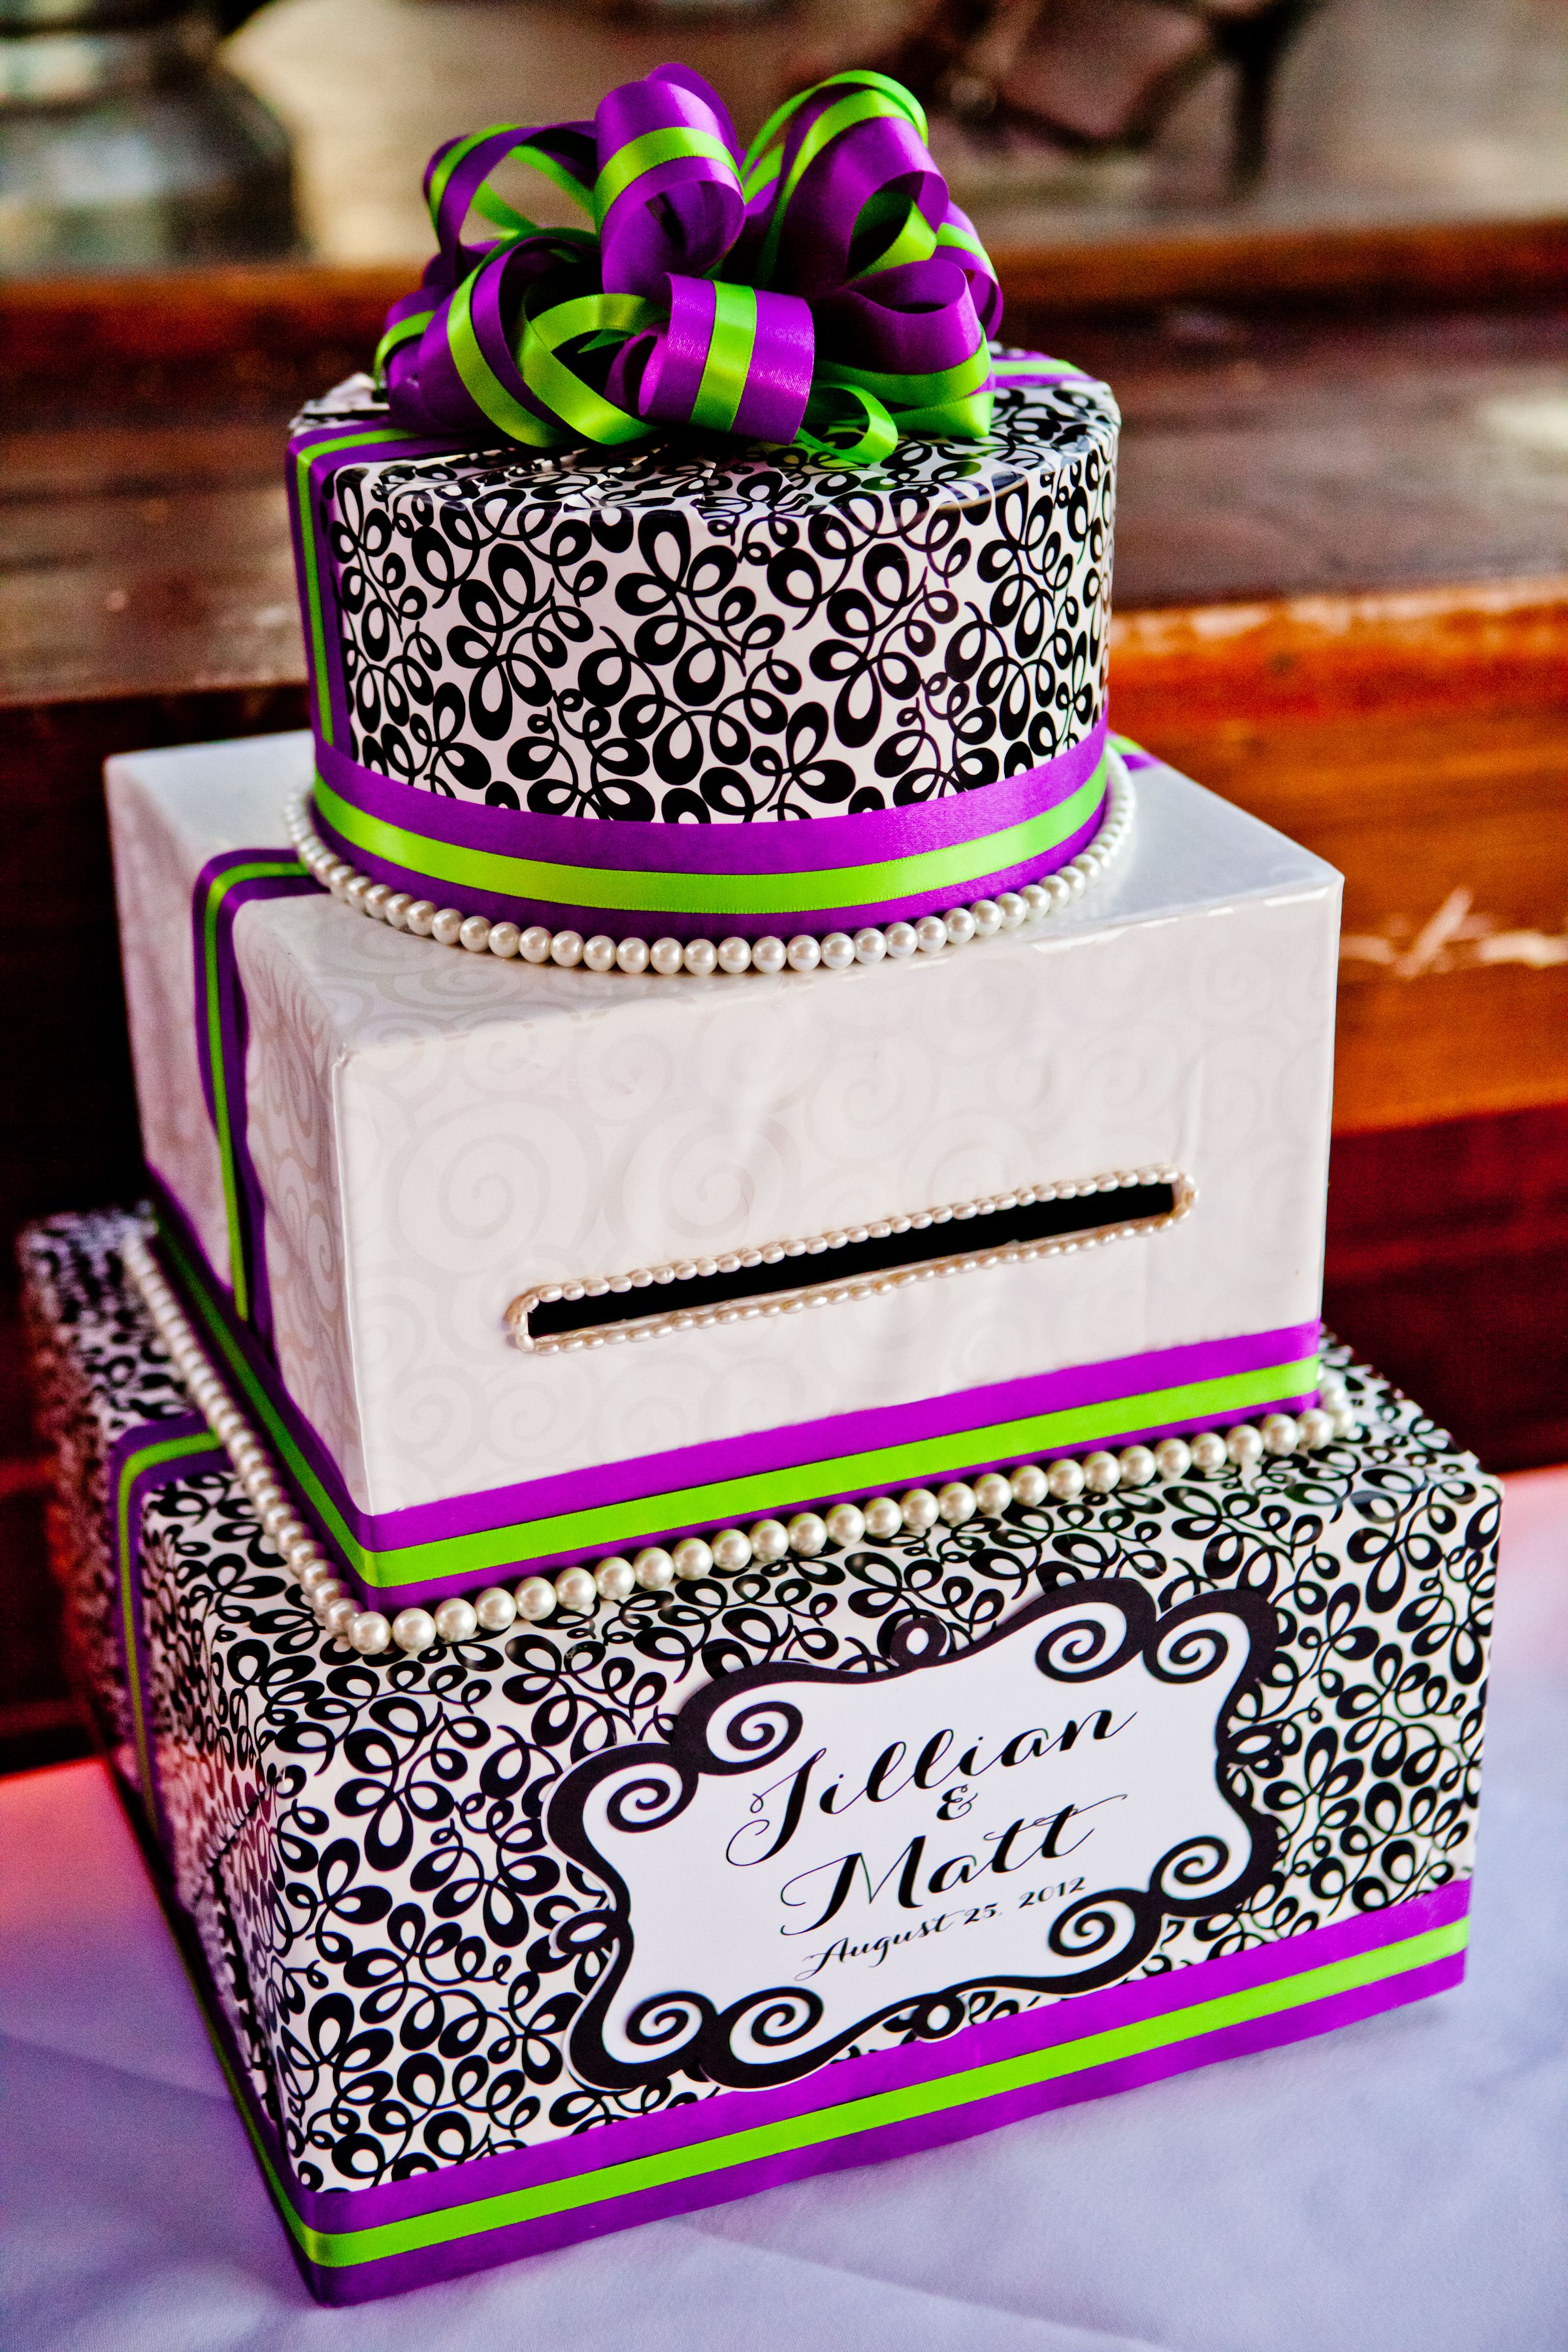 Our wedding cake gift card holder Wedding stuff Pinterest